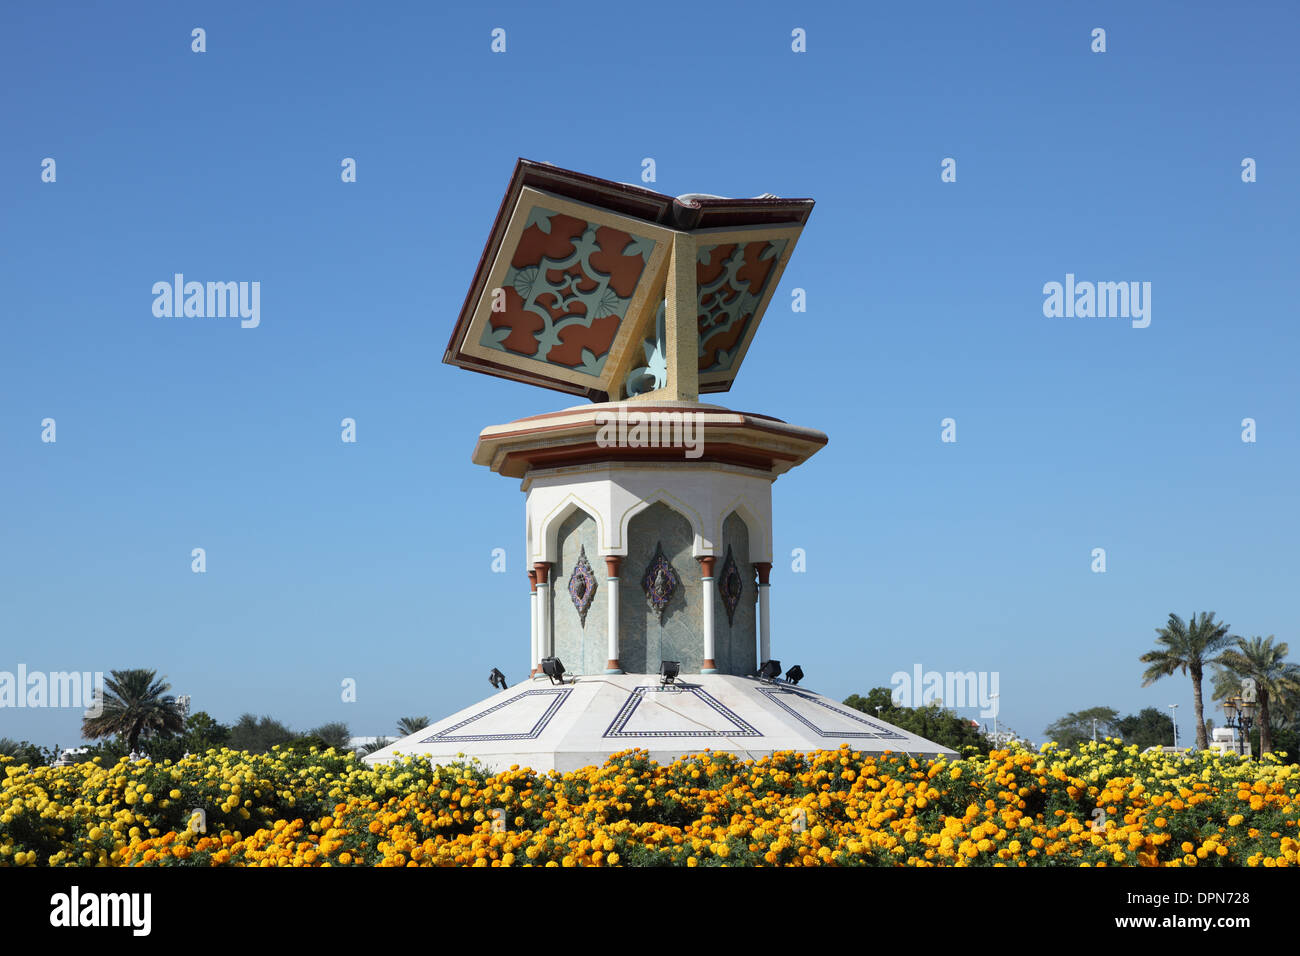 The Cultural Roundabout (former book roundabout) in Sharjah, United Arab Emirates - Stock Image